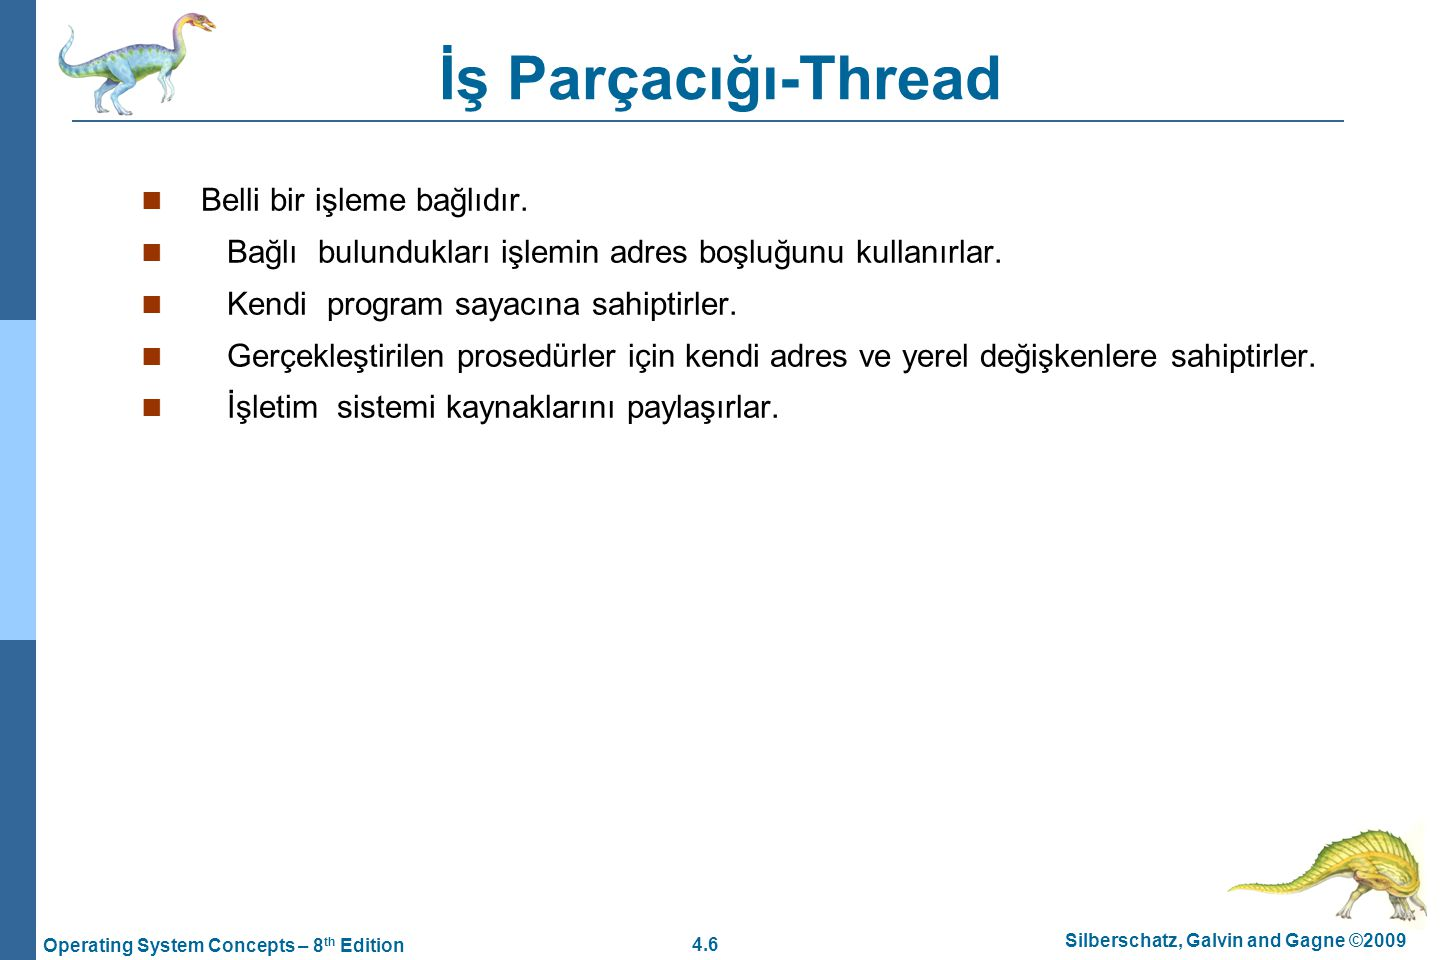 4.7 Silberschatz, Galvin and Gagne ©2009 Operating System Concepts – 8 th Edition Single and Multithreaded İşlemler